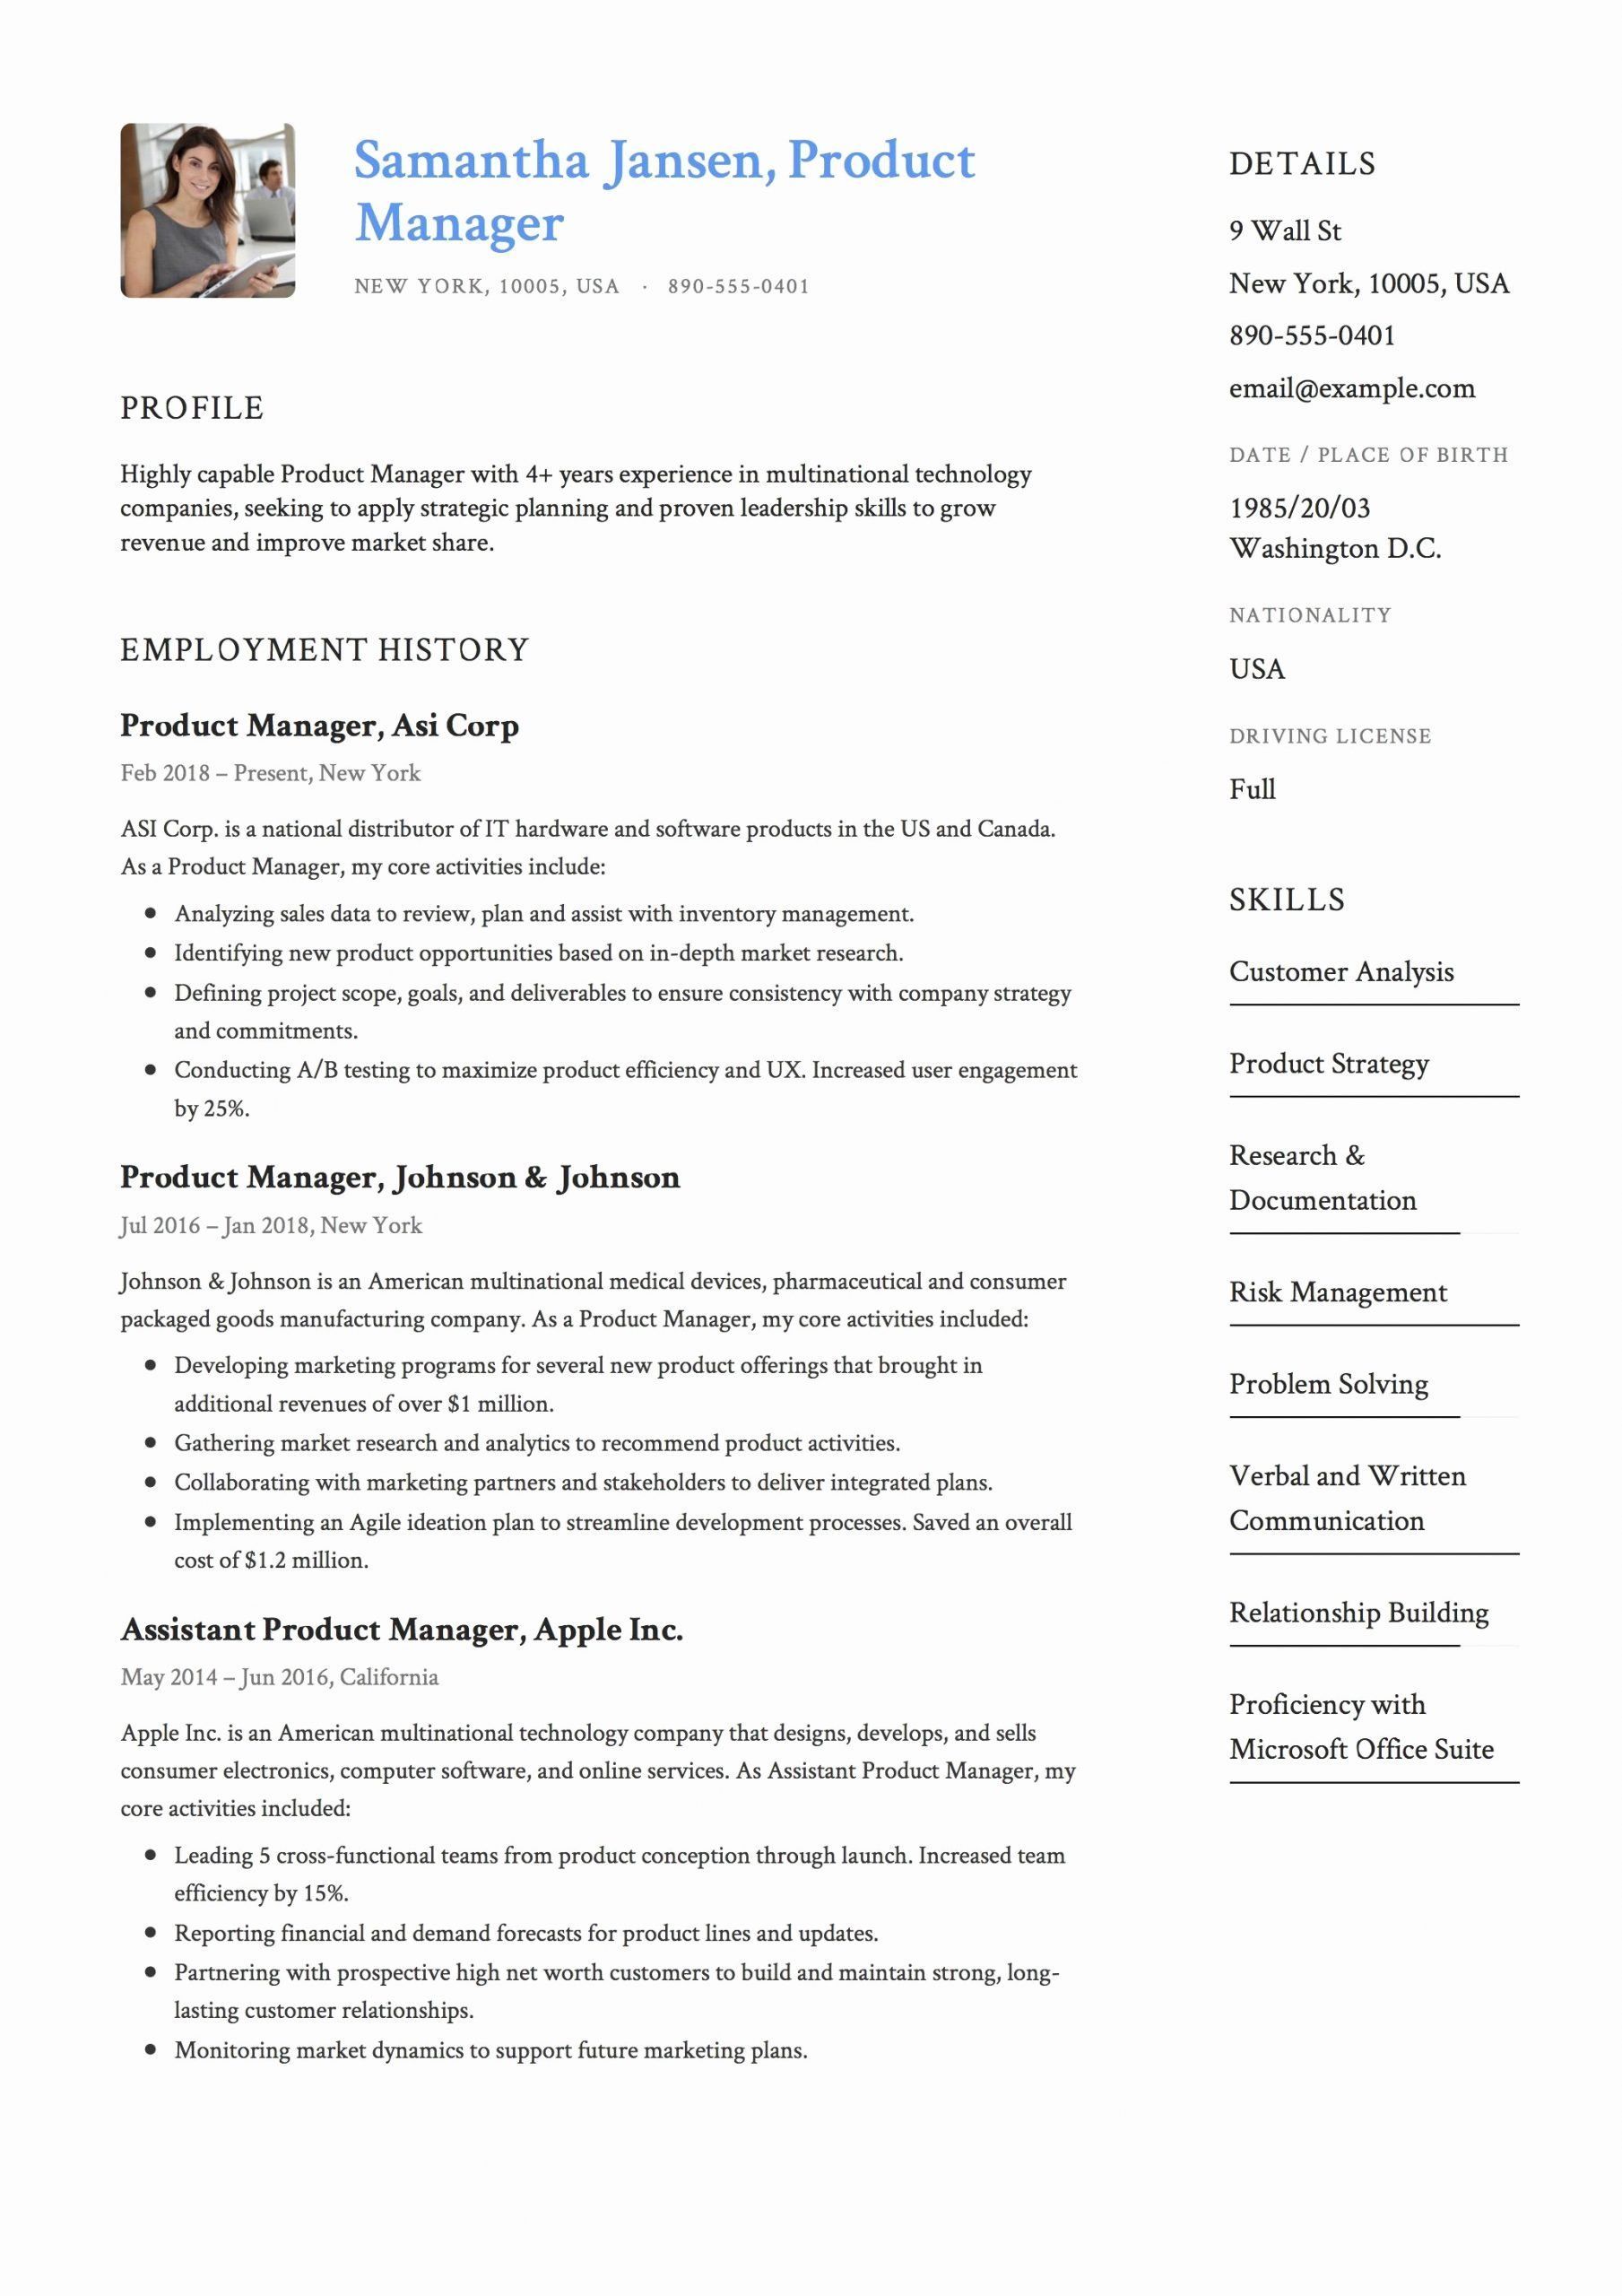 Product Manager Resume Examples Unique Product Manager